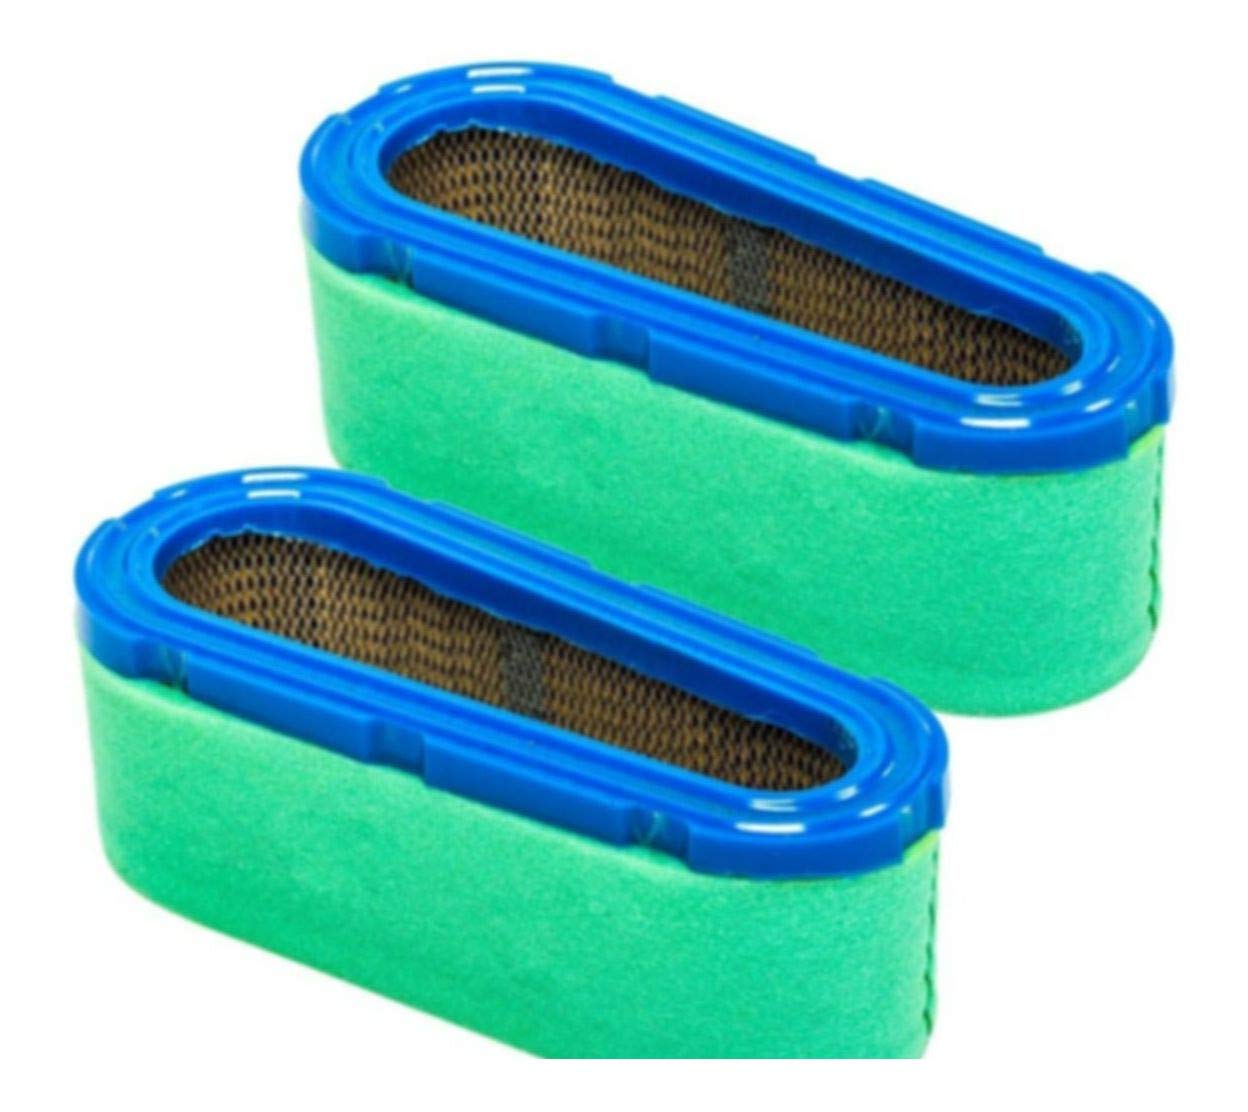 Compatible Parts_ 2PK Air Filter Popular shop Fresno Mall is the lowest price challenge Pre Kit ВrіggsStr for